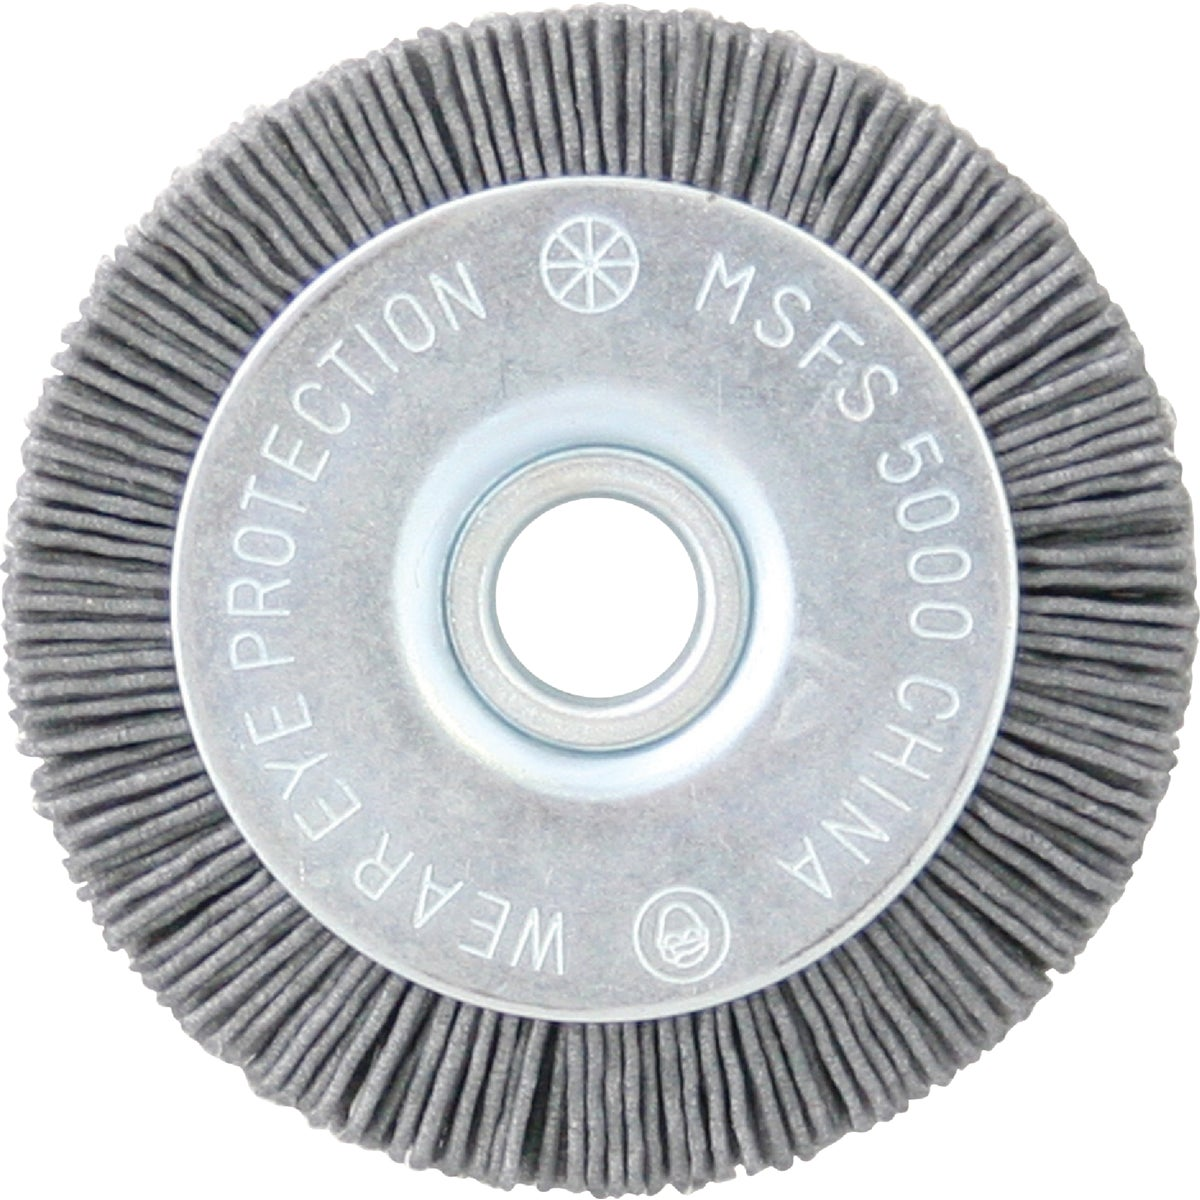 DEBURRING BRUSH - 814-00-51 by Ilco Corp